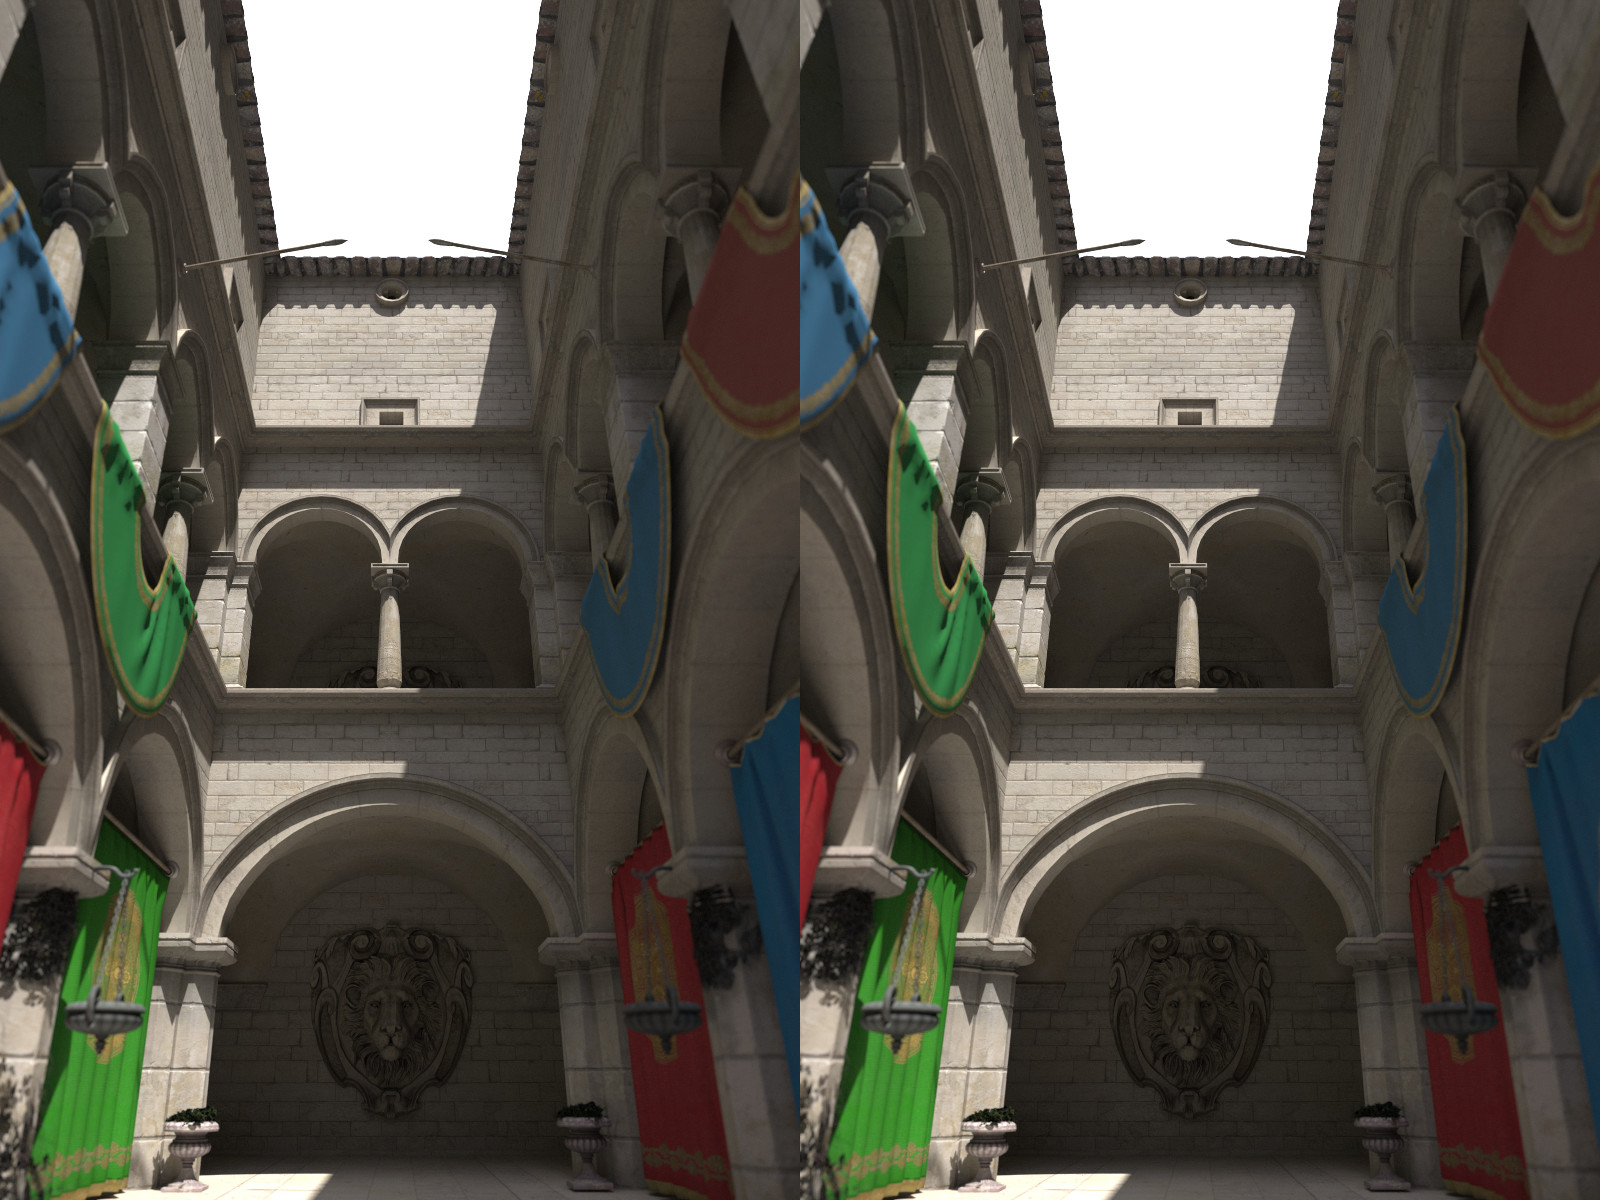 Example 3D stereo image using stereoMode = OSP_STEREO_SIDE_BY_SIDE.